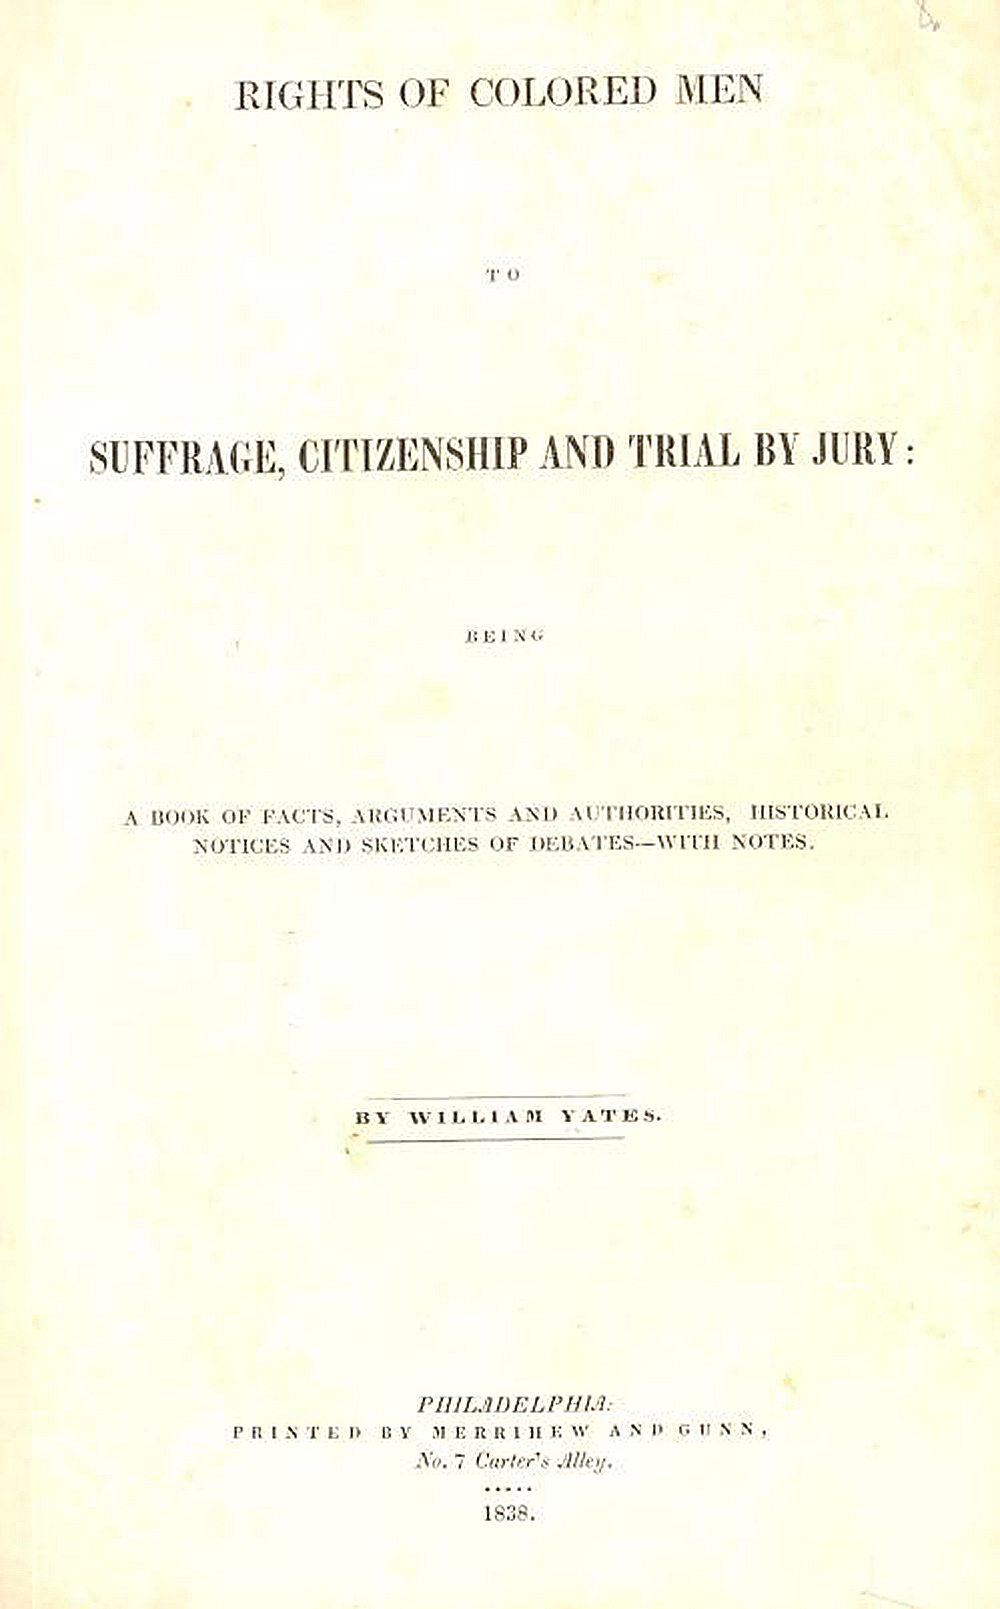 Rights of Colored Men to Suffrage, Citizenship and Trial by Jury, by William Yates, 1838. The Johns Hopkins University, Sheridan Libraries.